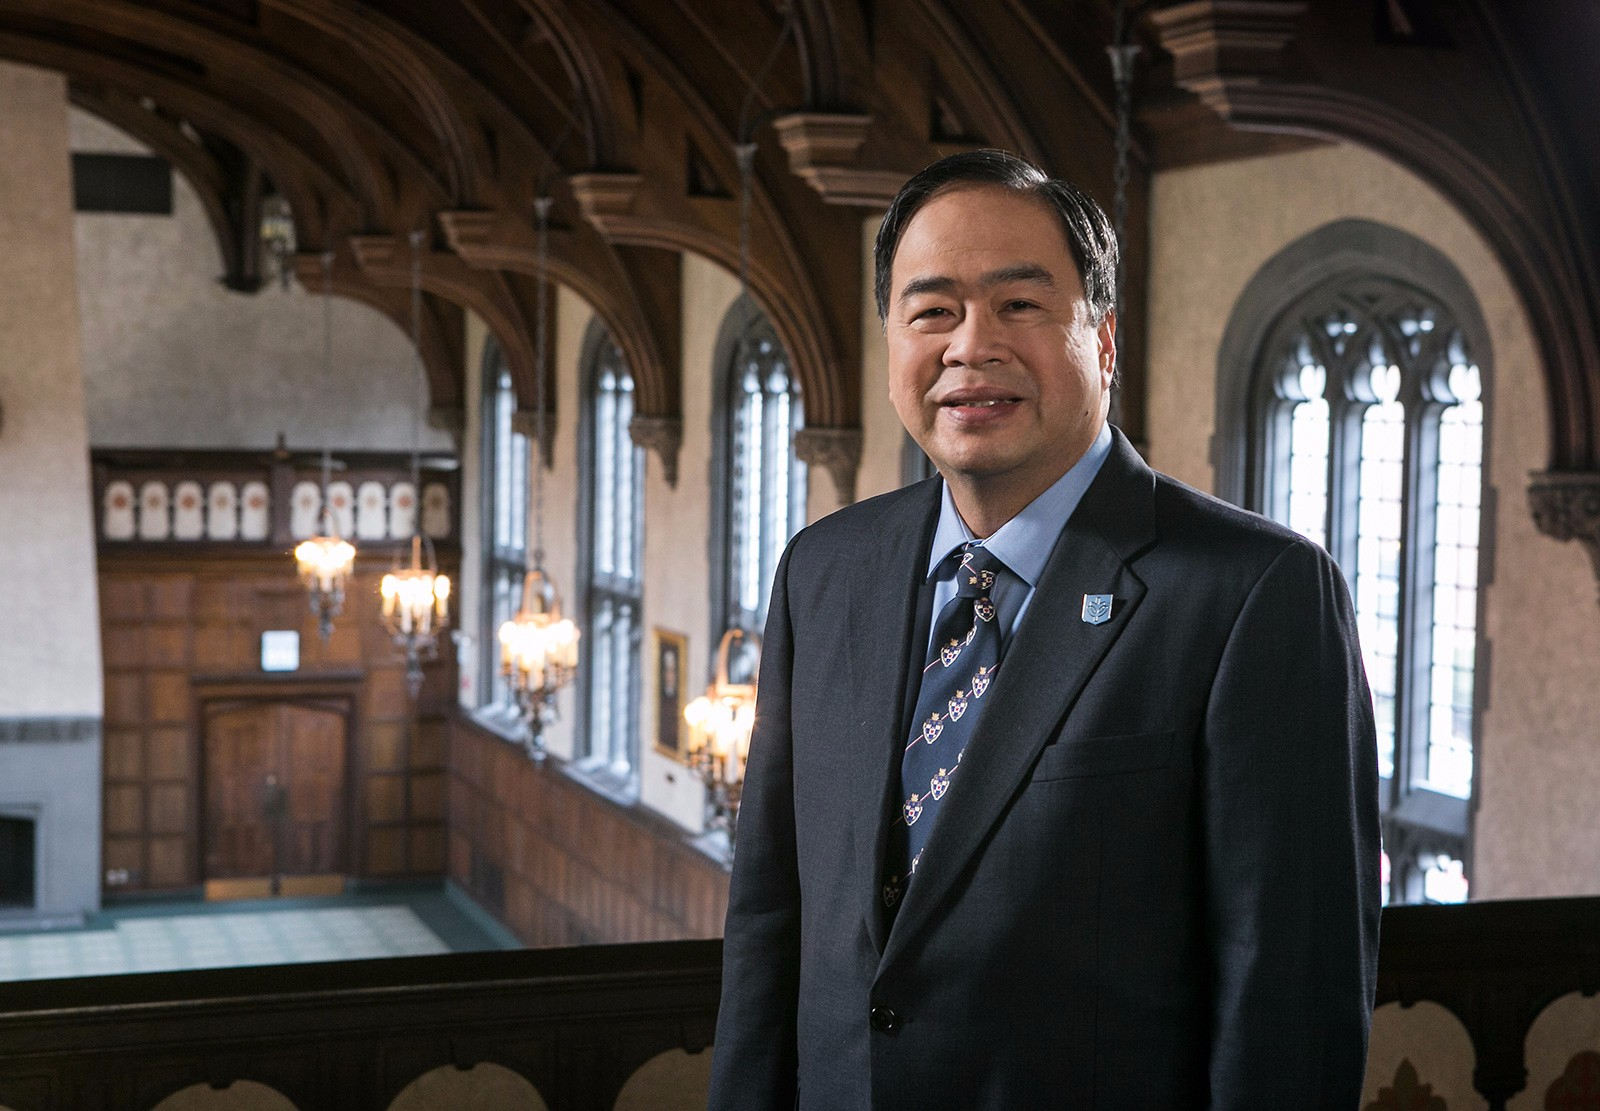 Dr. A. Gabriel Esteban is DePaul's first lay leader. (DePaul University/Jamie Moncrief)